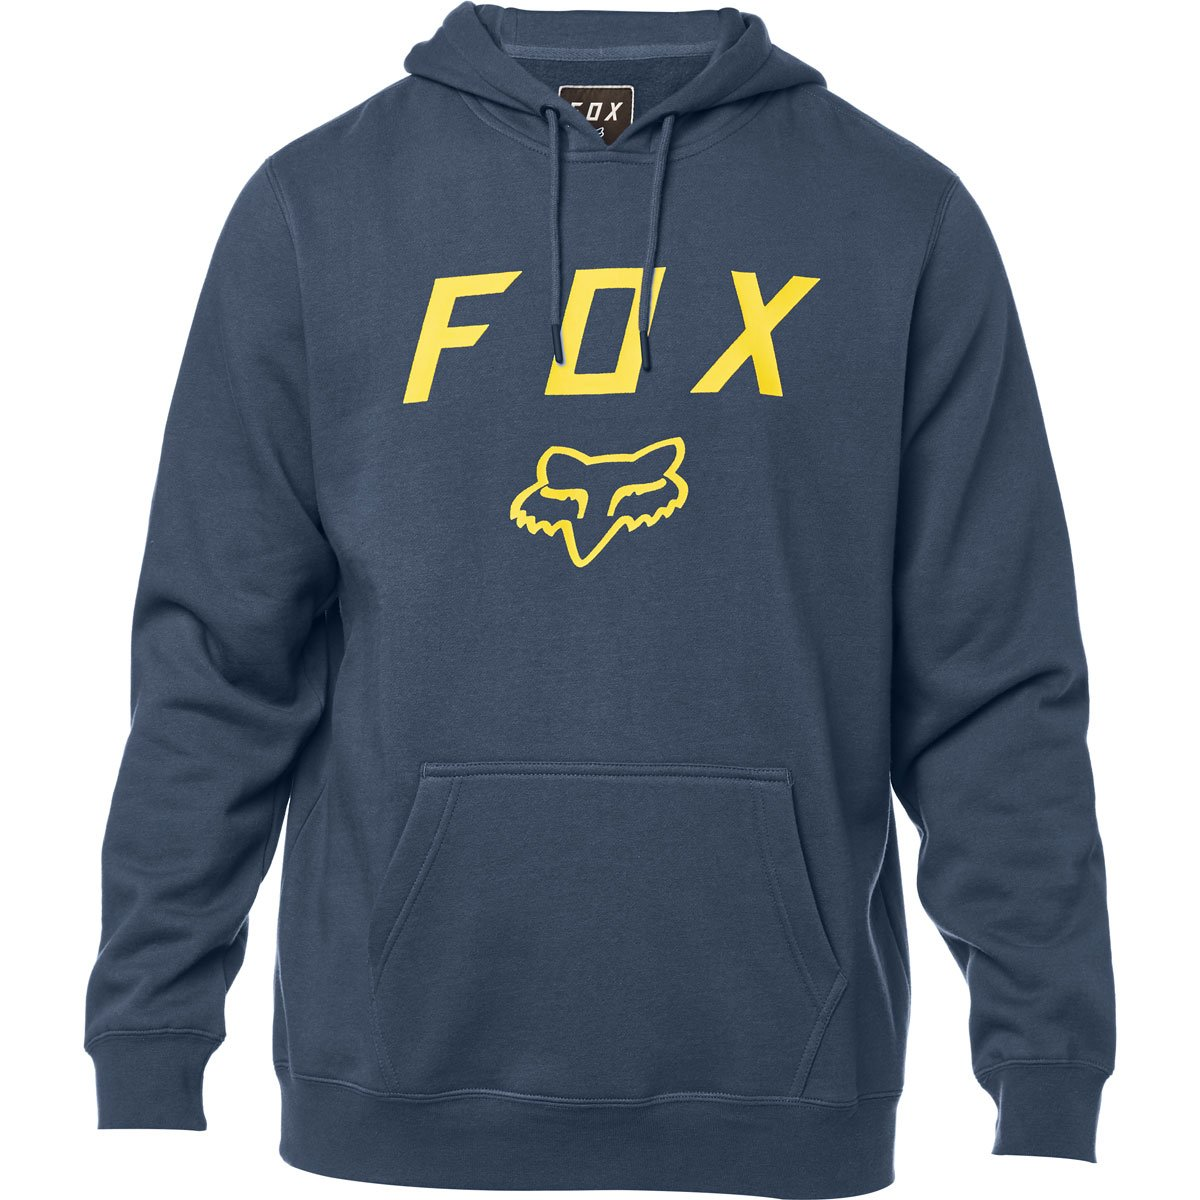 Fox Men's Standard Fit Legacy Logo Pullover Hooded Sweatshirt, Navy, 2X